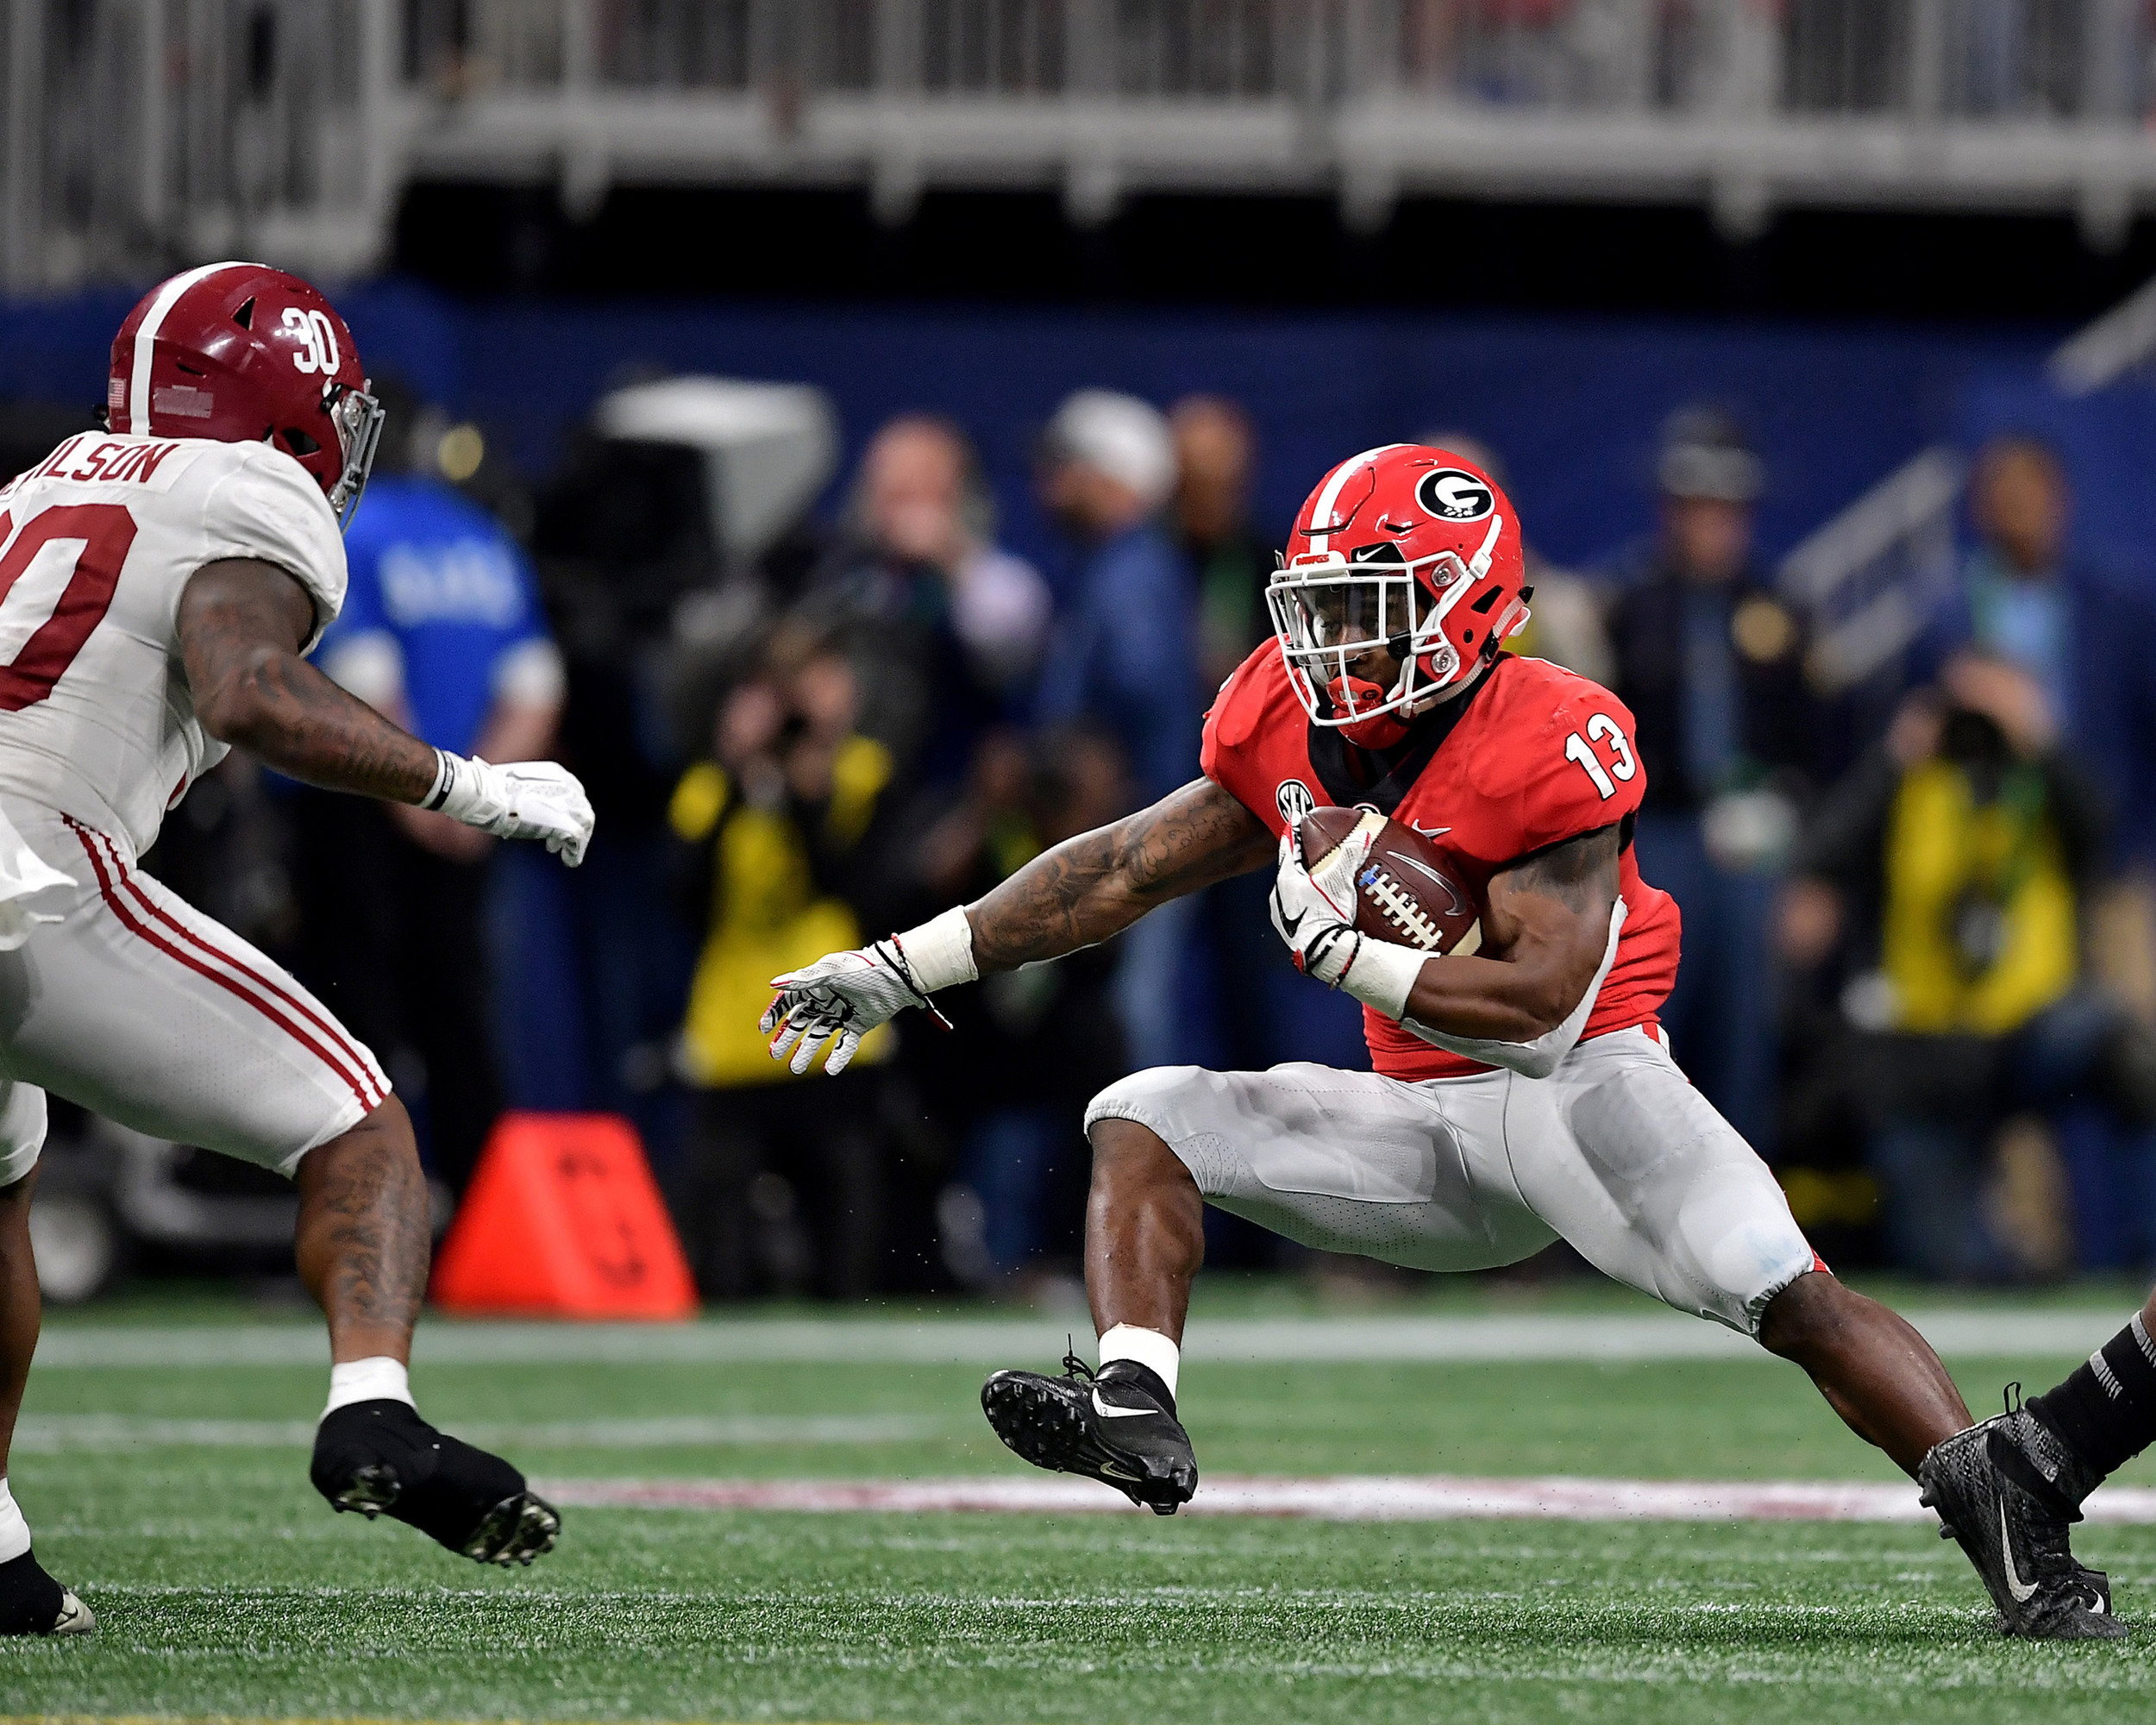 Georgia Bulldogs running back Elijah Holyfield (13) with a carry during the second half of the 2018 SEC Championship football game against the Alabama Crimson Tide at Mercedes-Benz Stadium in Atlanta, Ga., on Dec. 1, 2018. Alabama wins 35-28. (Photo by Lee Walls)